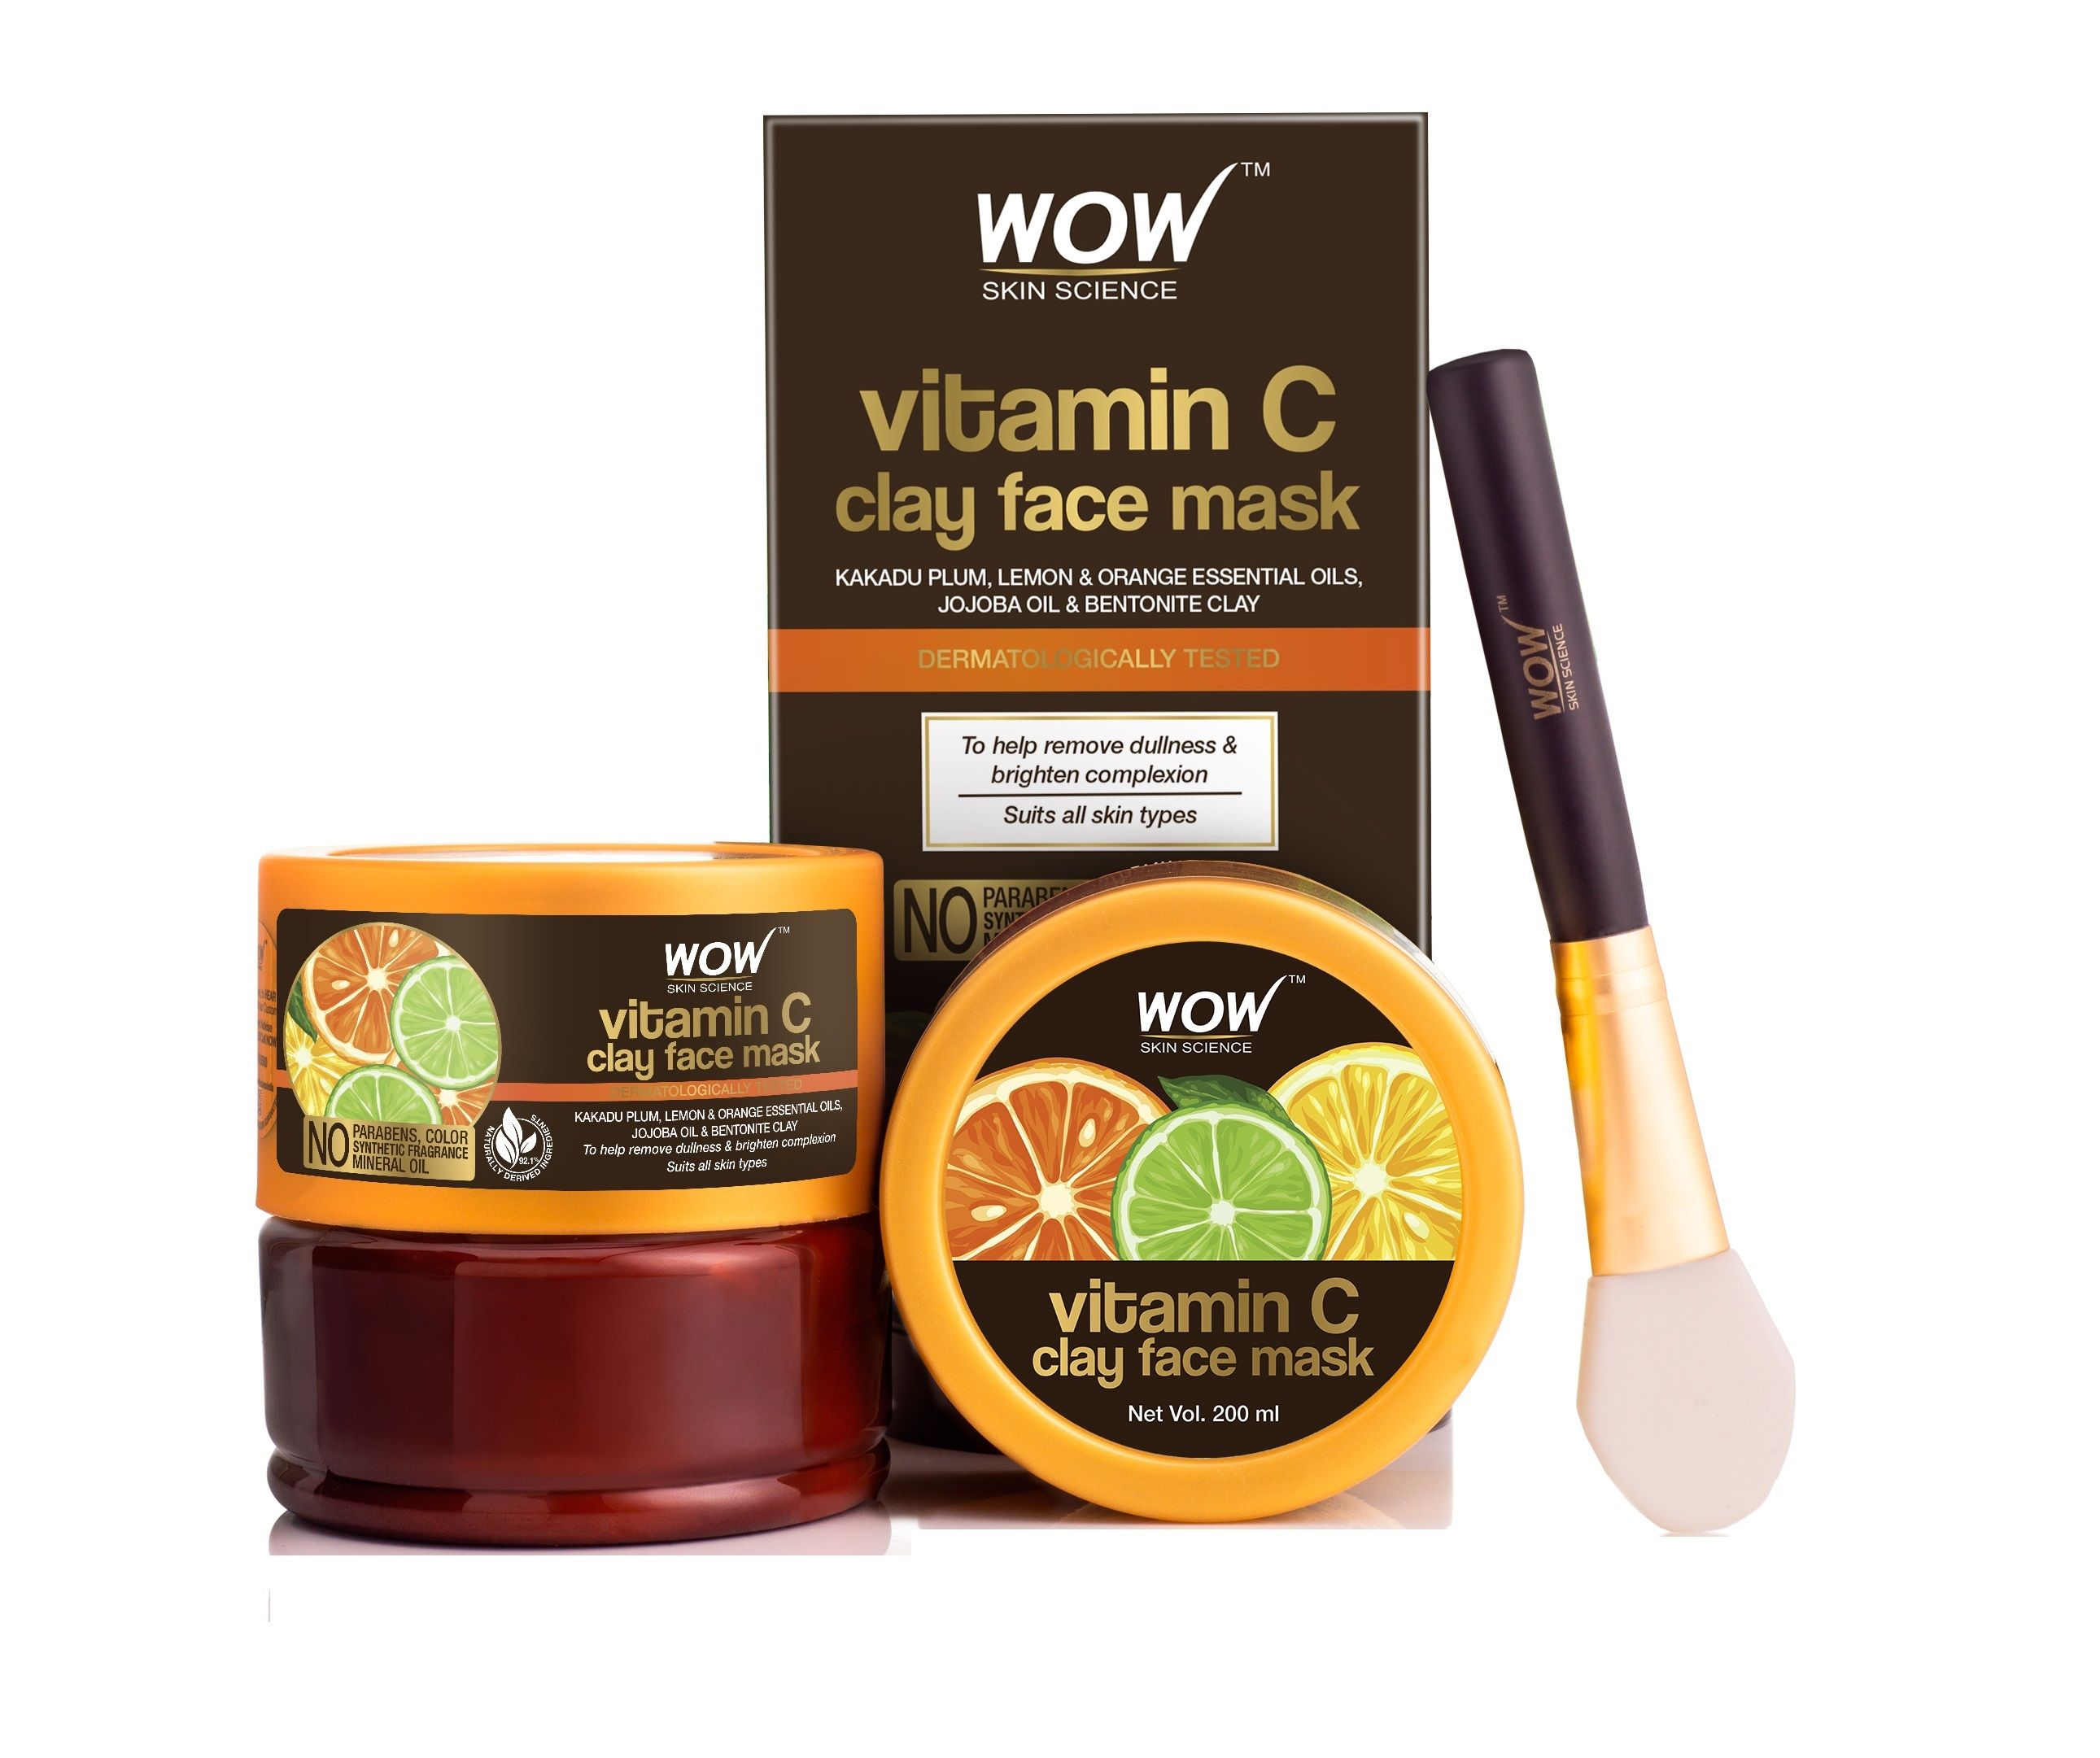 Wow Skin Science Vitamin C Glow Clay Face Mask Buy Wow Skin Science Vitamin C Glow Clay Face Mask Online At Best Price In India Nykaa